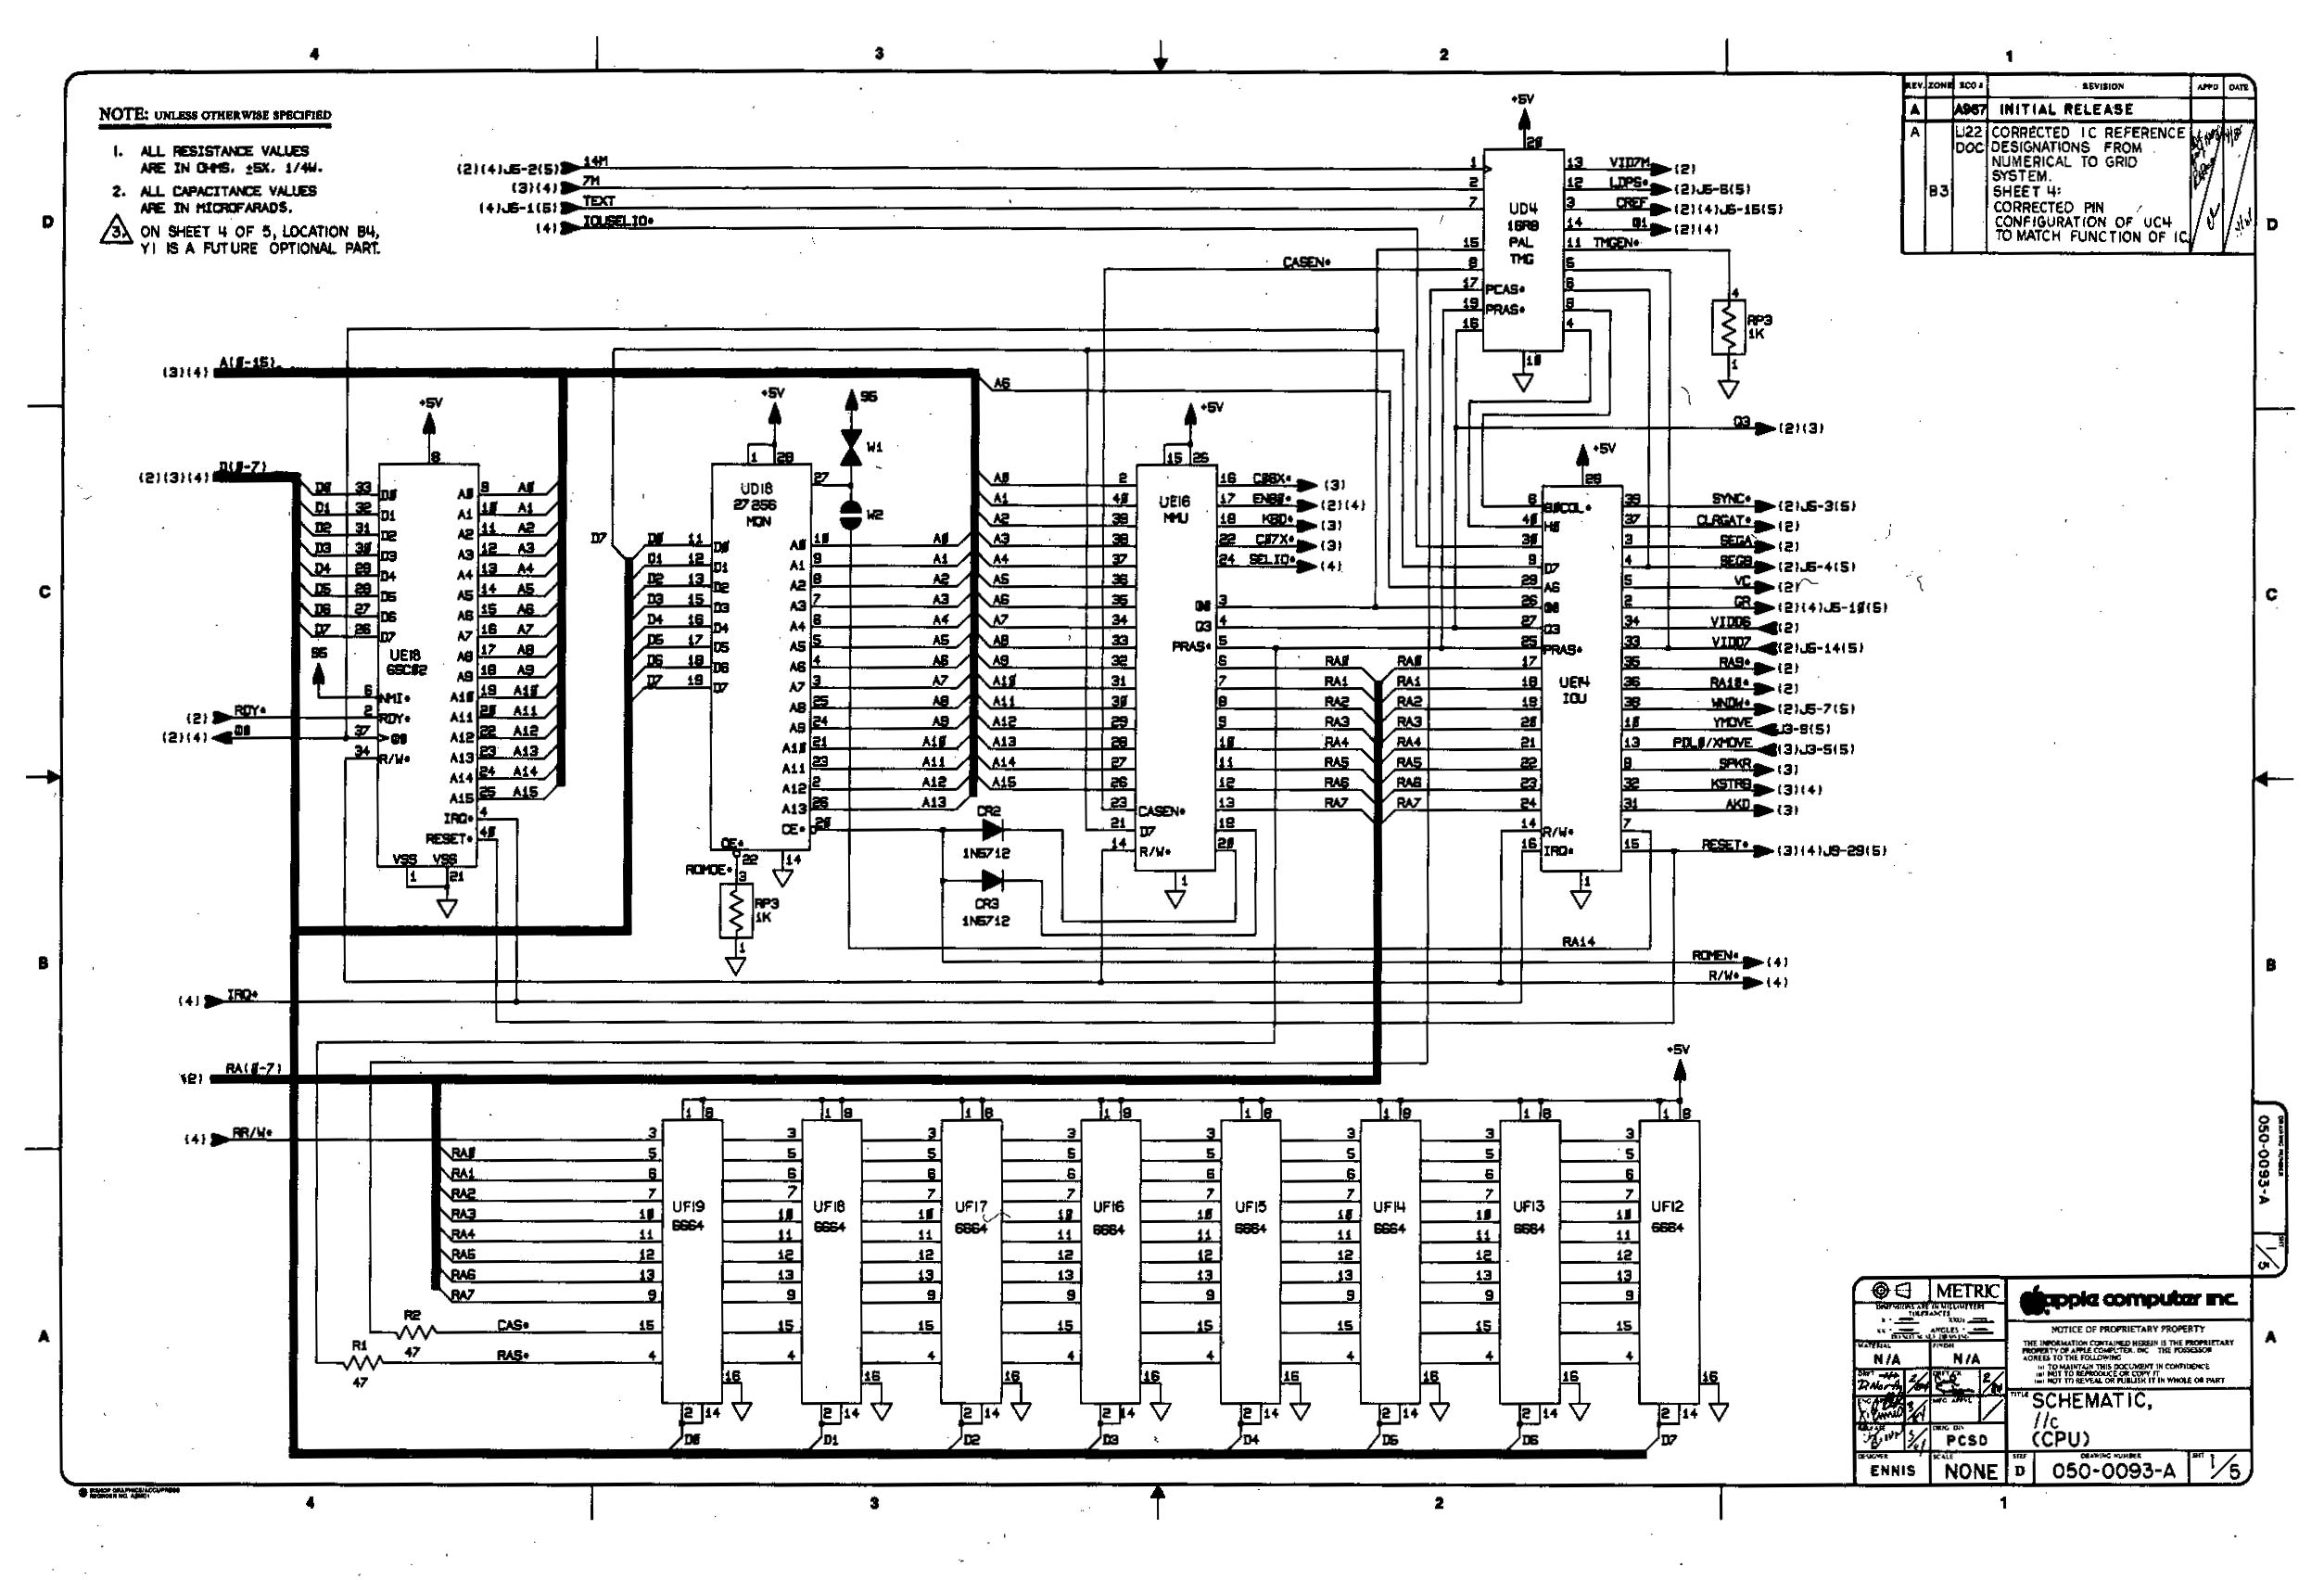 Apple IIc Schematic Page 1 schematic 2700 download readingrat net A1181 MacBook Black at panicattacktreatment.co